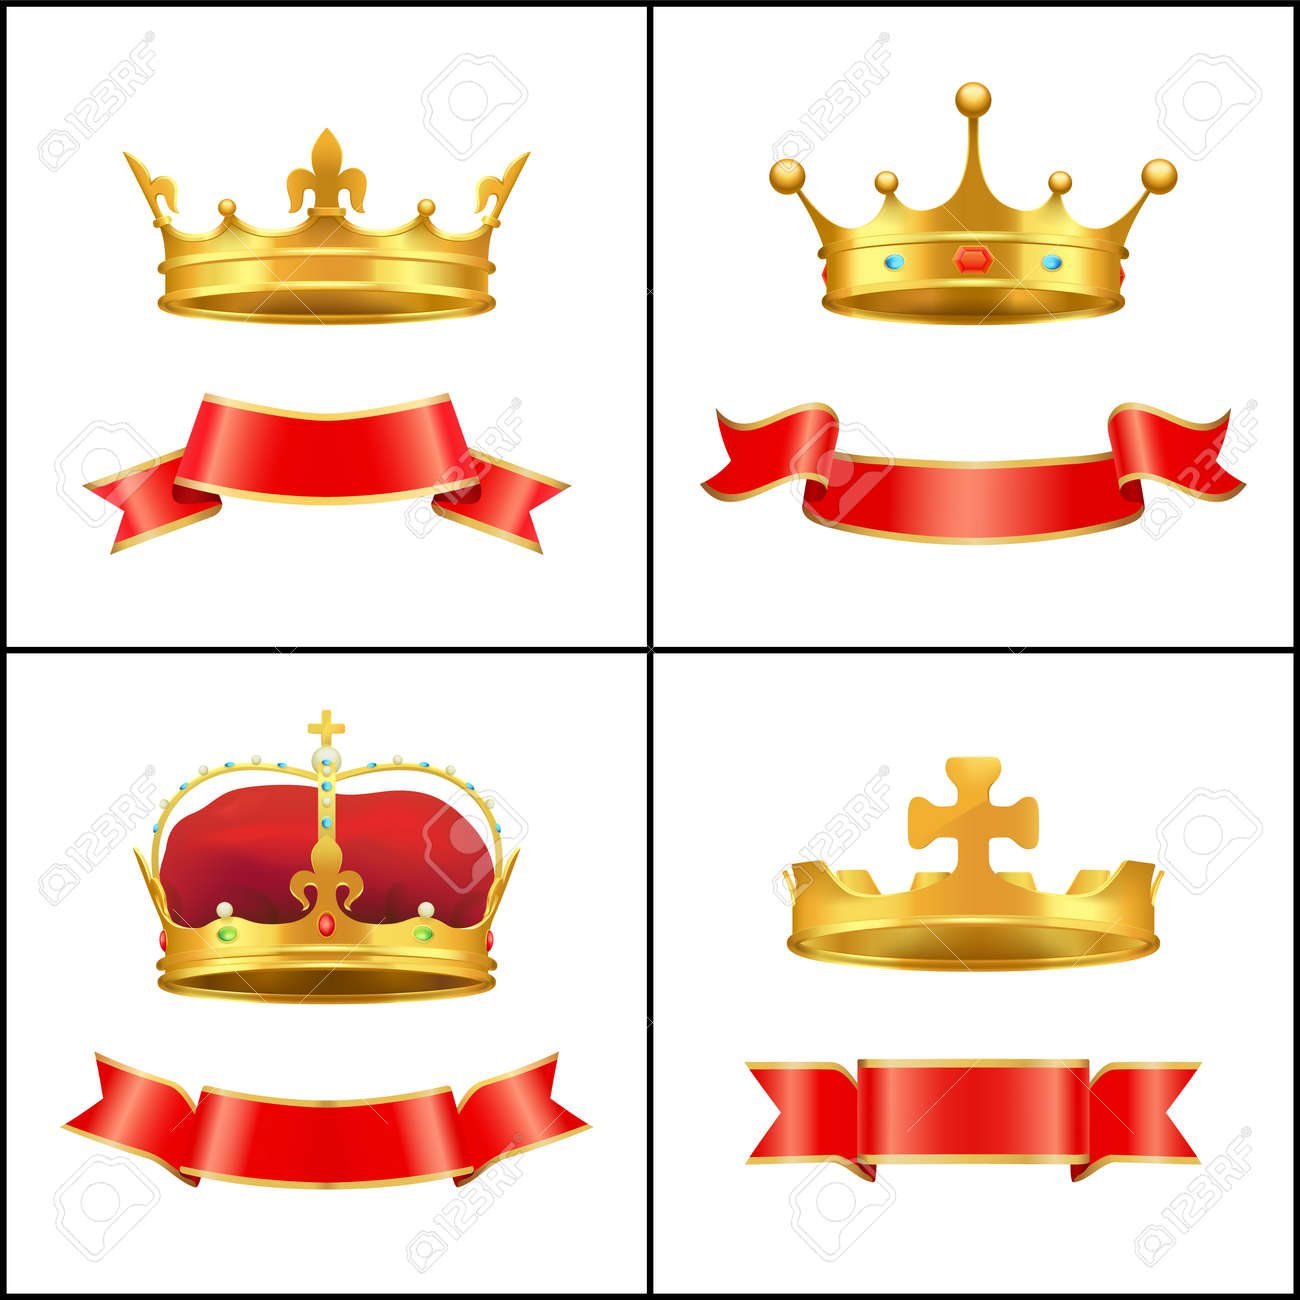 Crown Regal Power and Banner Vector Illustration - 111111427